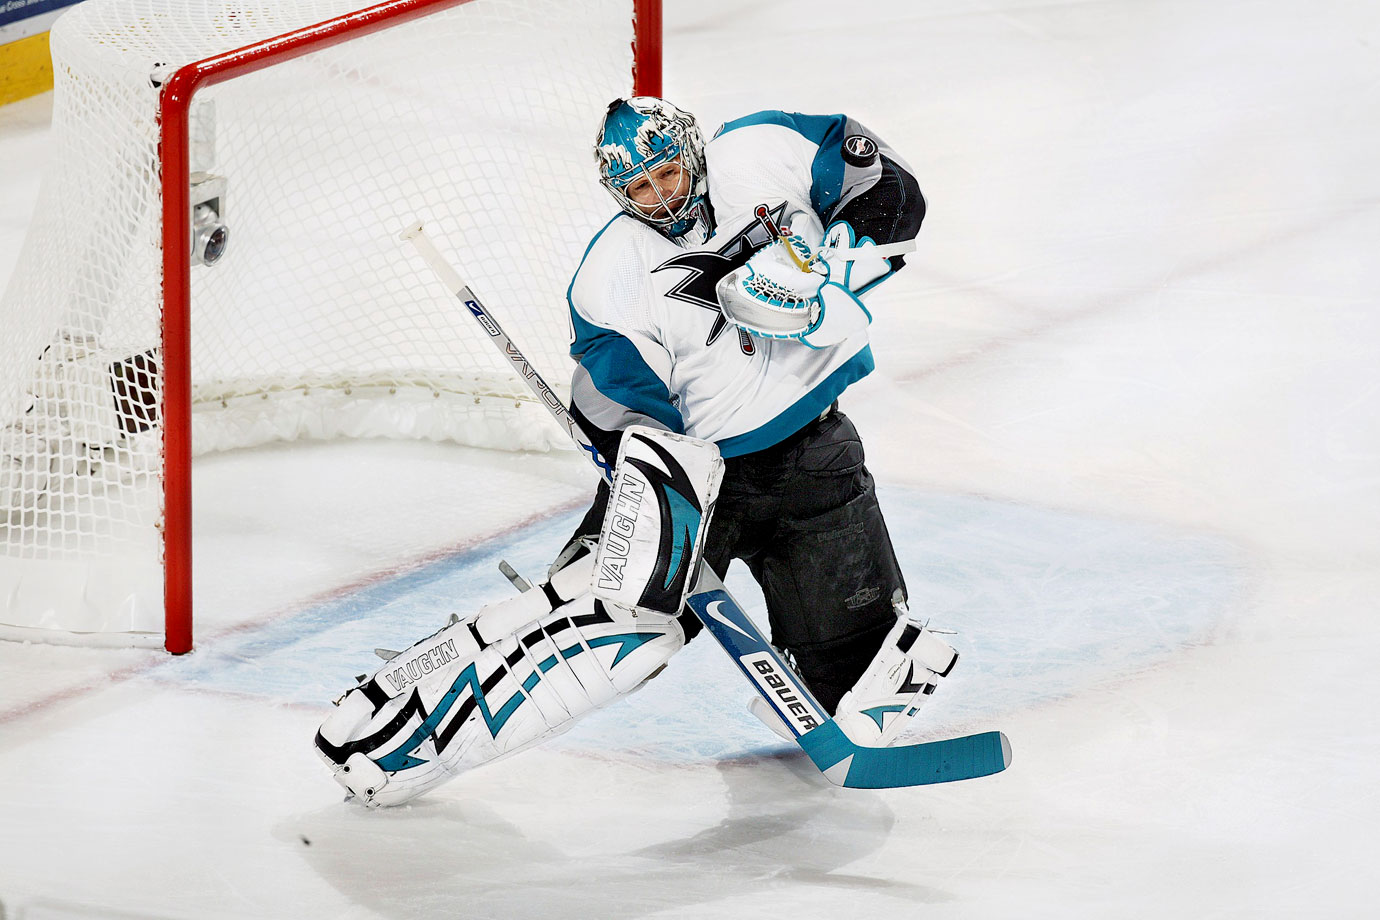 Evengi Nabokov retired from the NHL as a member of the organization that drafted him more than two decades early. The goalie called it quits Feb. 11, two days after being traded to the San Jose Sharks, the team for which he played 10 of his 14 seasons. Nabokov holds the Sharks' franchise records for wins (293) and shutouts (50) and helped San Jose to the playoffs in all but one of his seasons there.